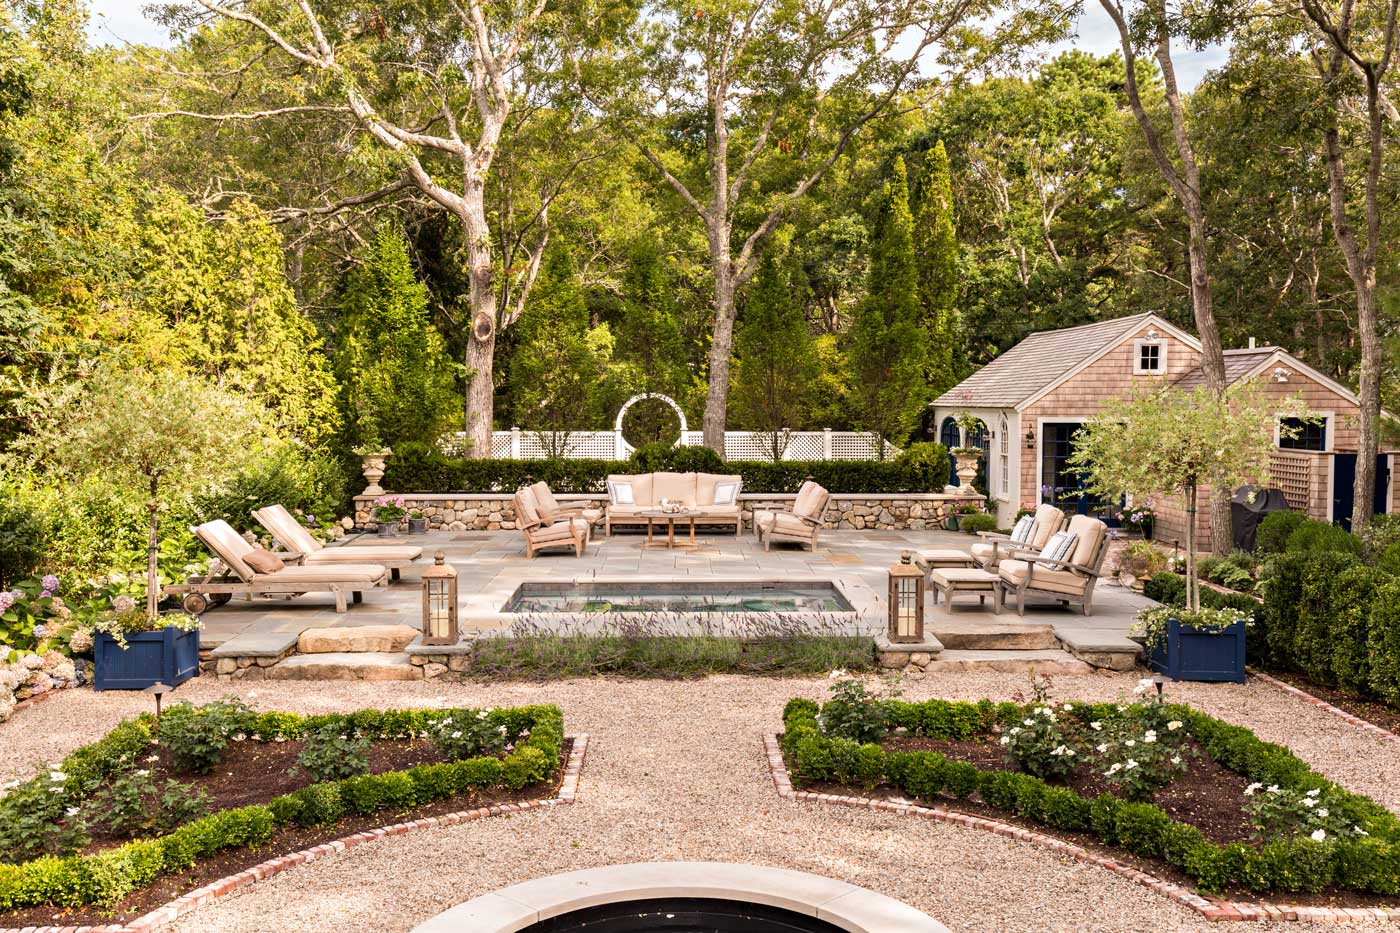 Backyard withreflecting pool and water feature are accented by stonewalls and parterre gardens with boxwoods and roses